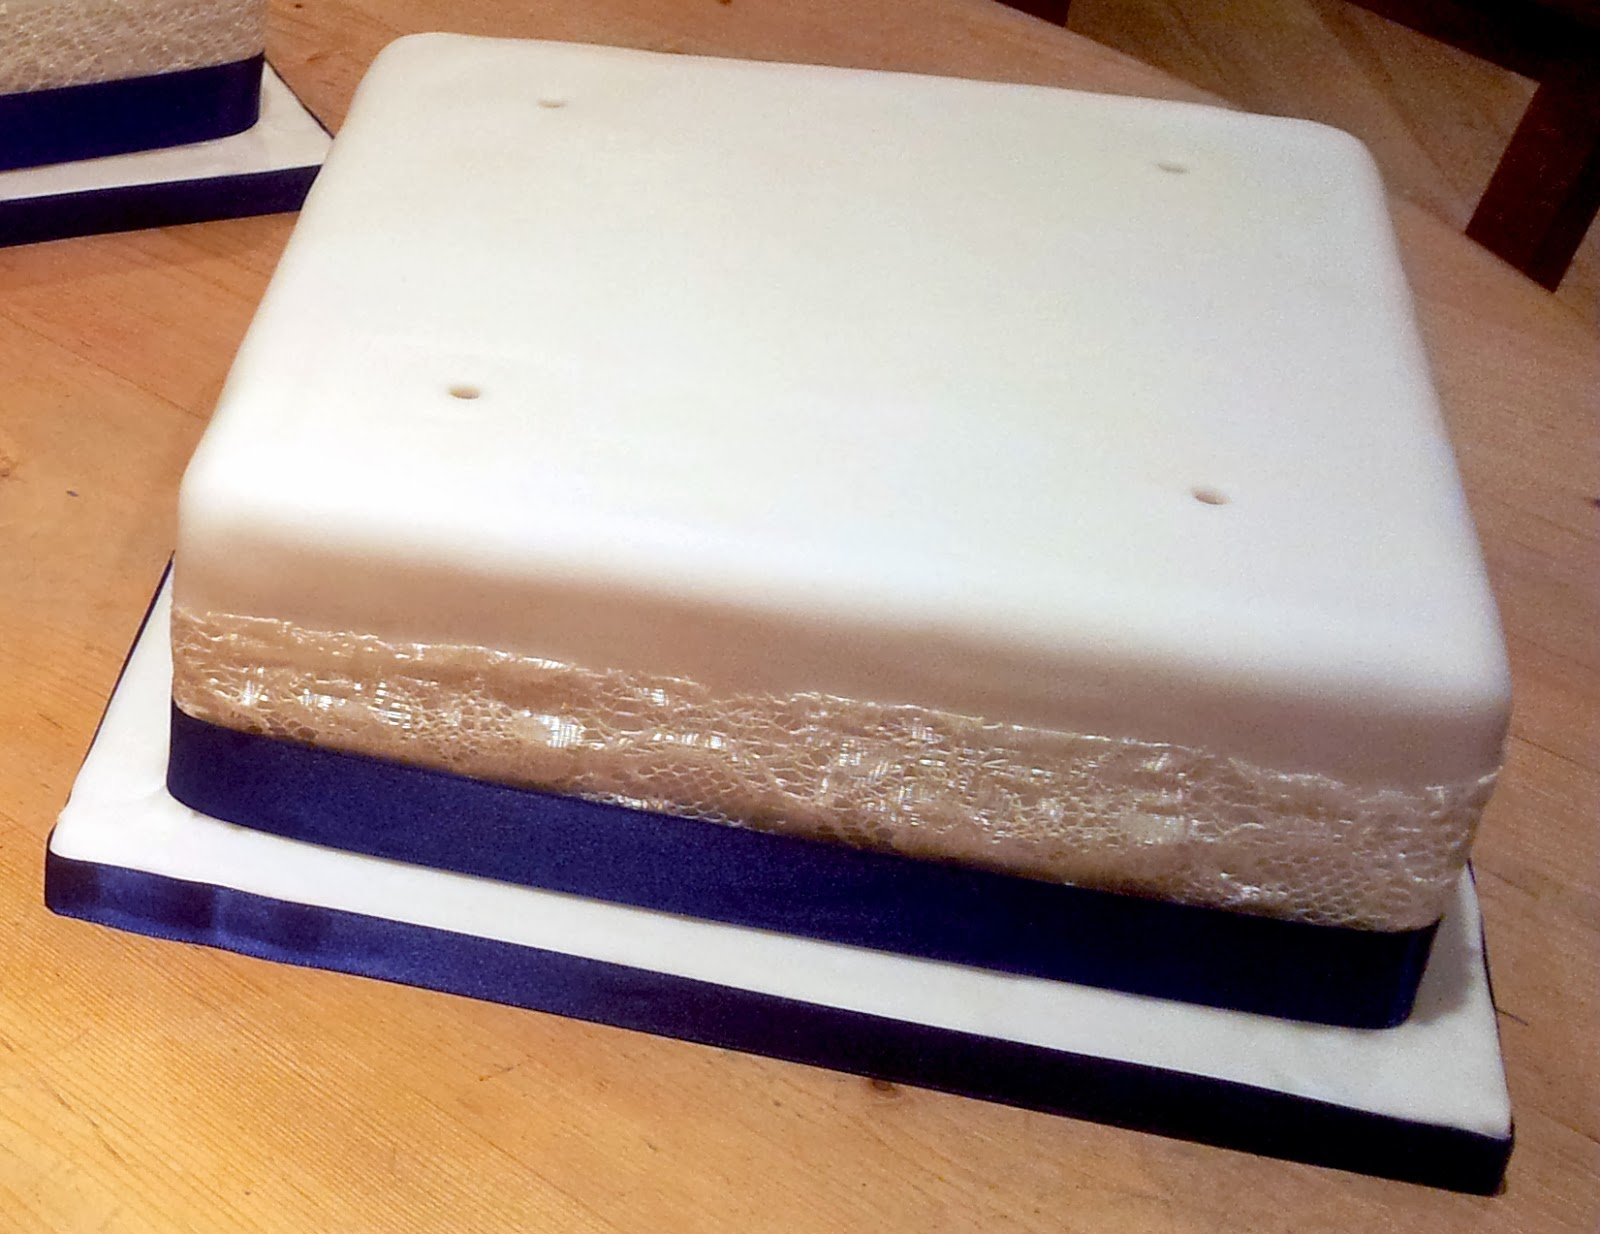 10 inch madeira wedding cake recipe makes cakes lemon madeira cake 10 inch square 10005